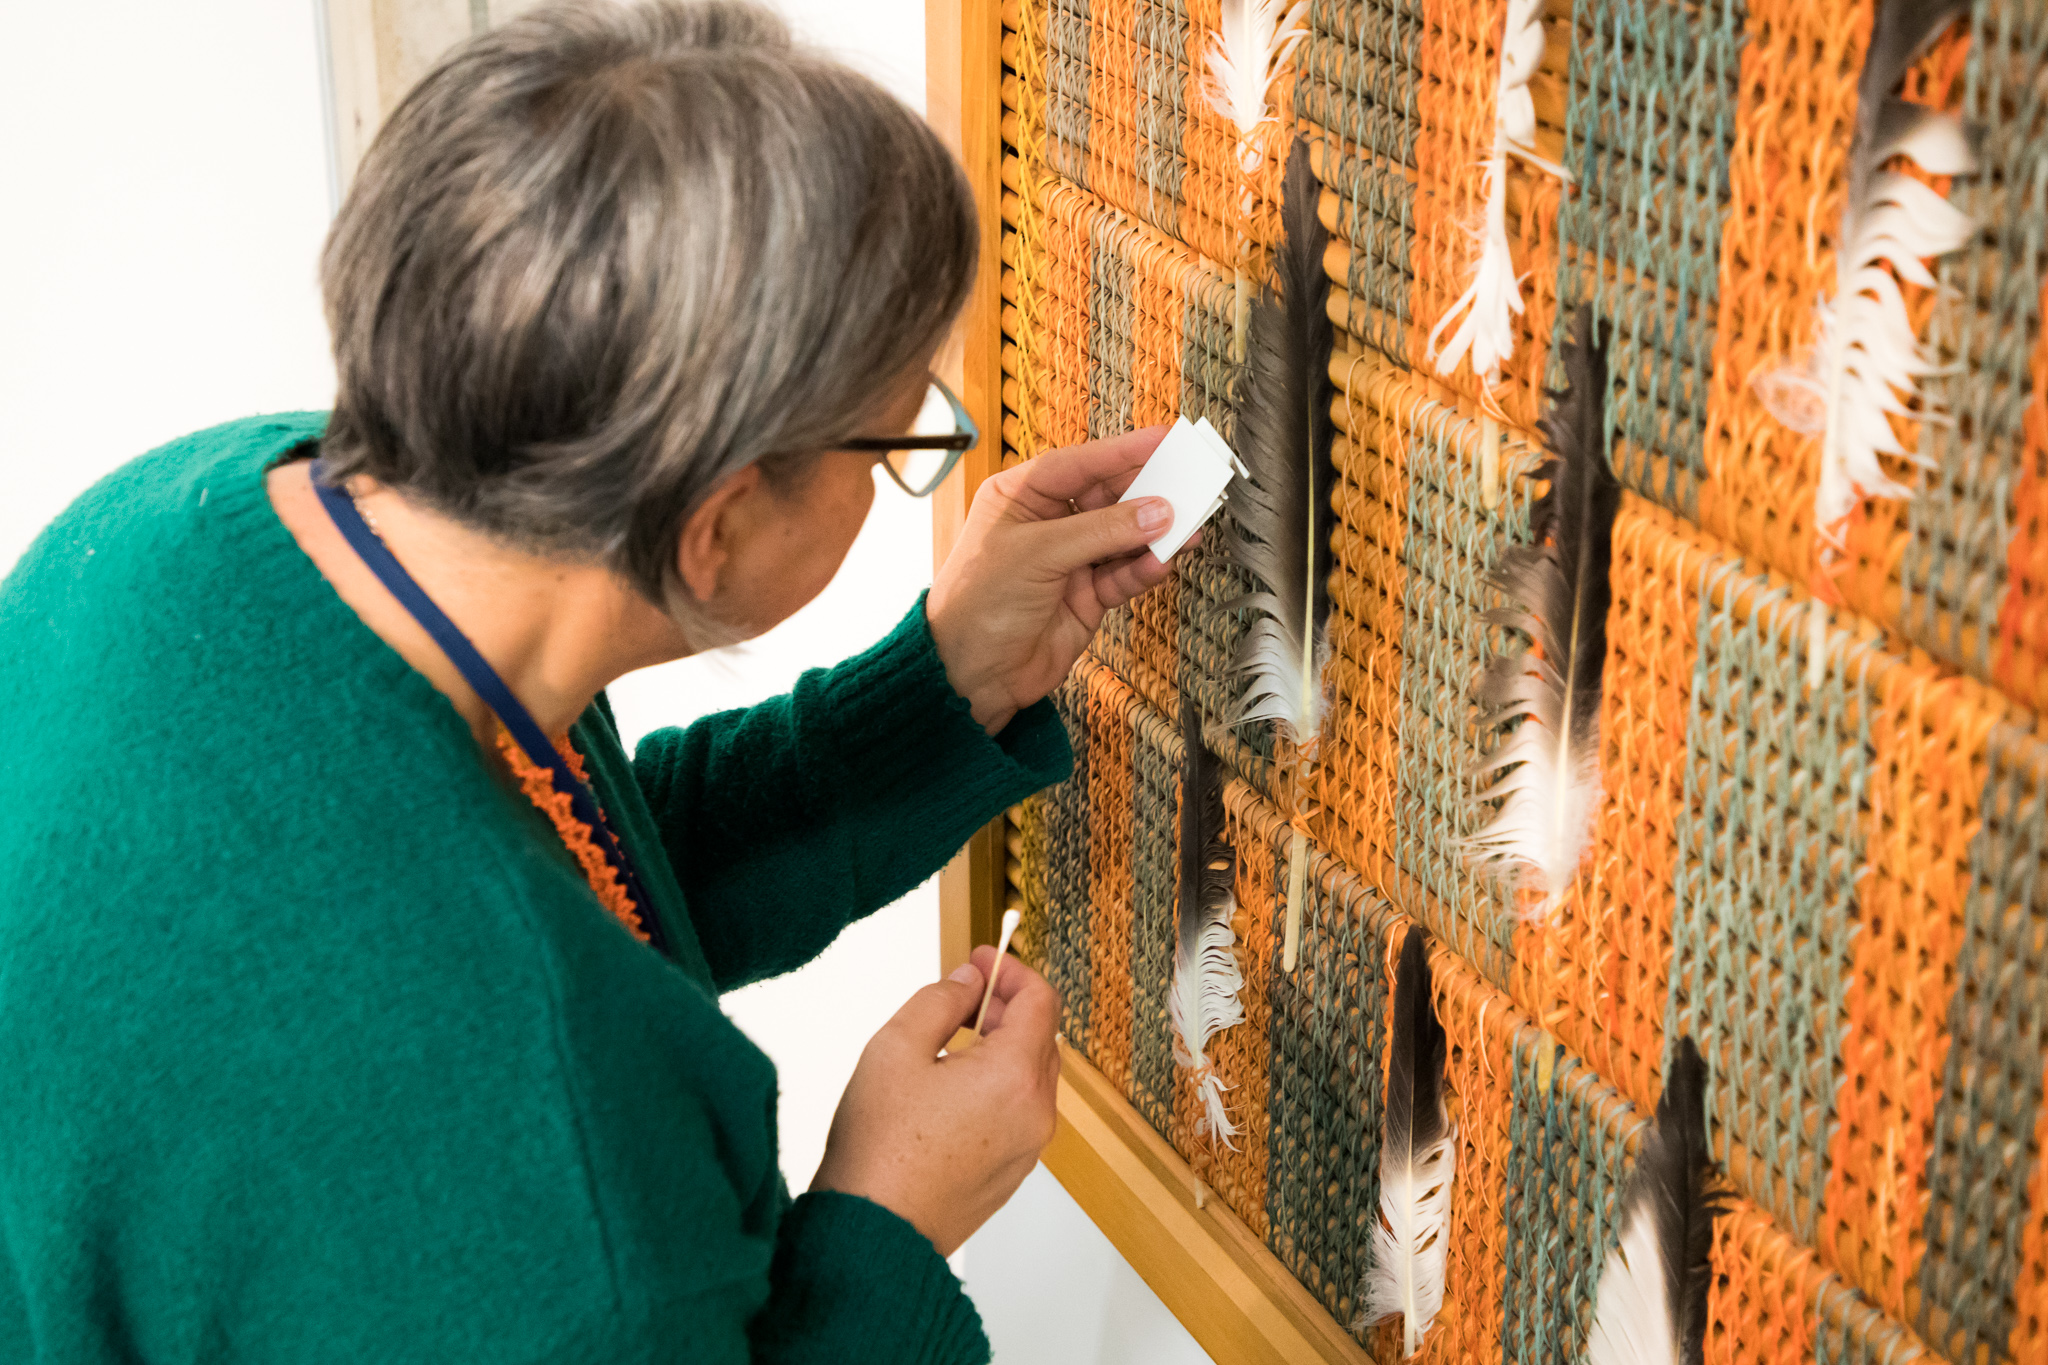 Woman looking closely at a feather on the panel.